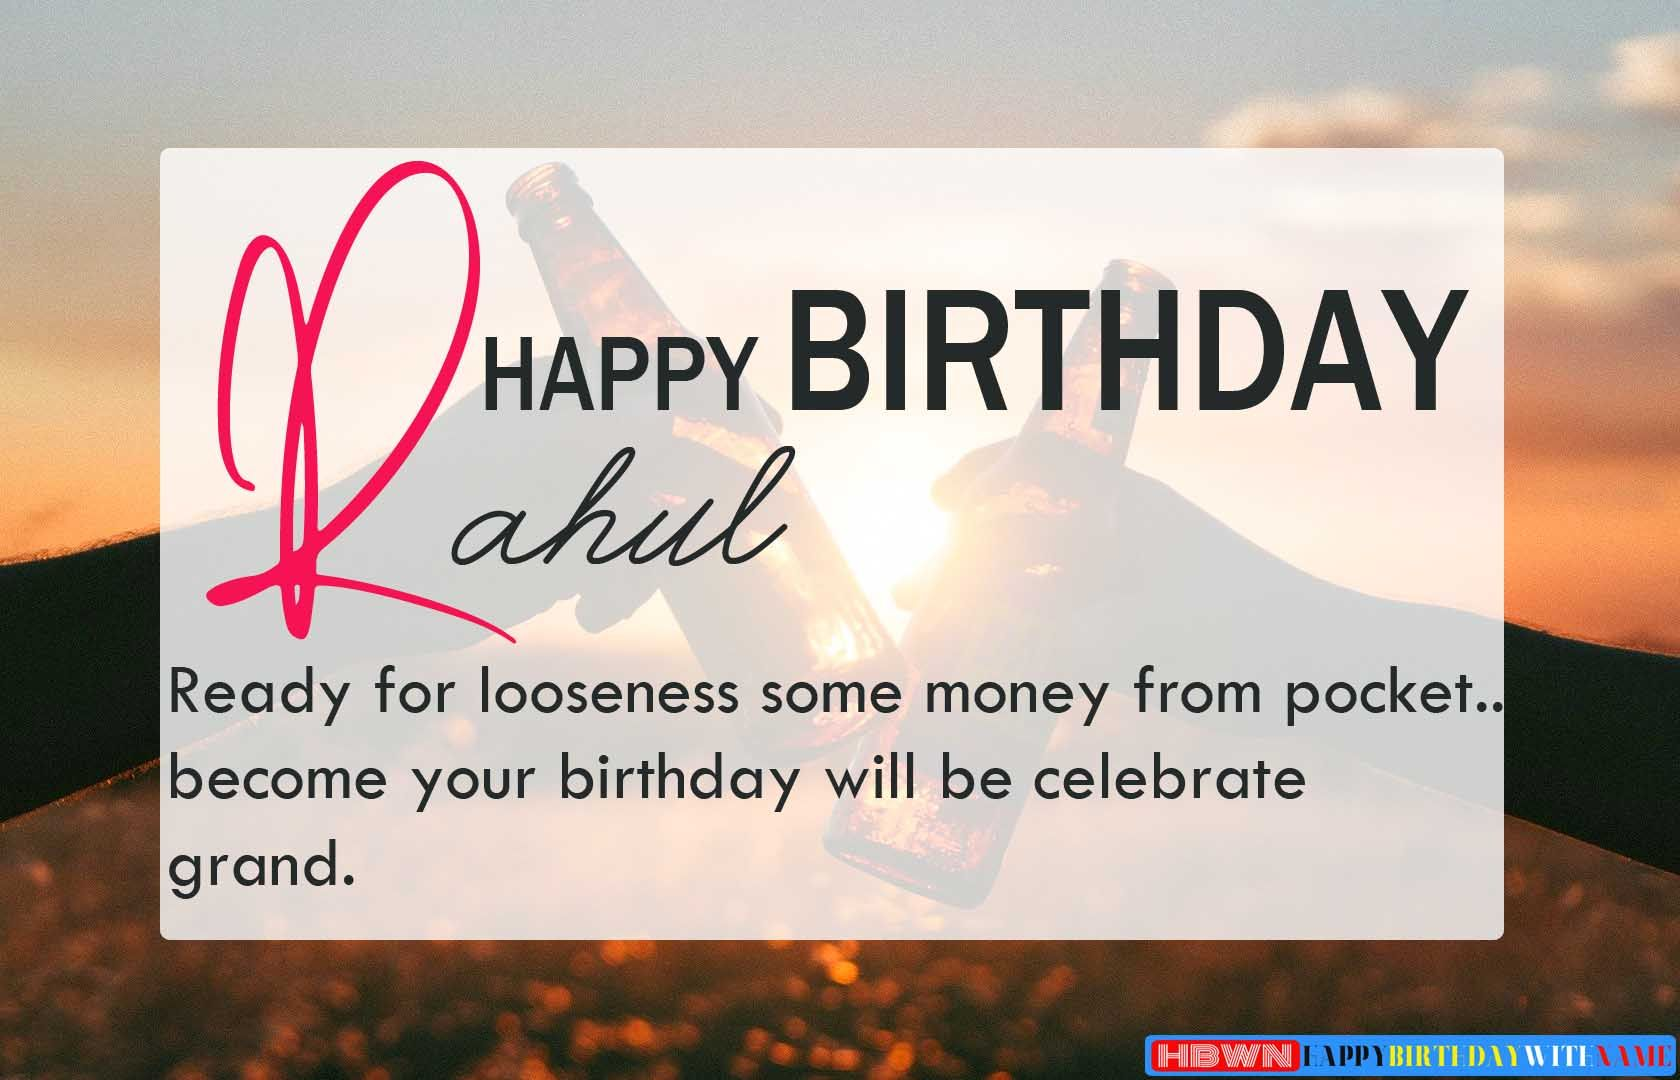 Happy Birthday Rahul Wishes Images, Cake, Song & Card  Birthday